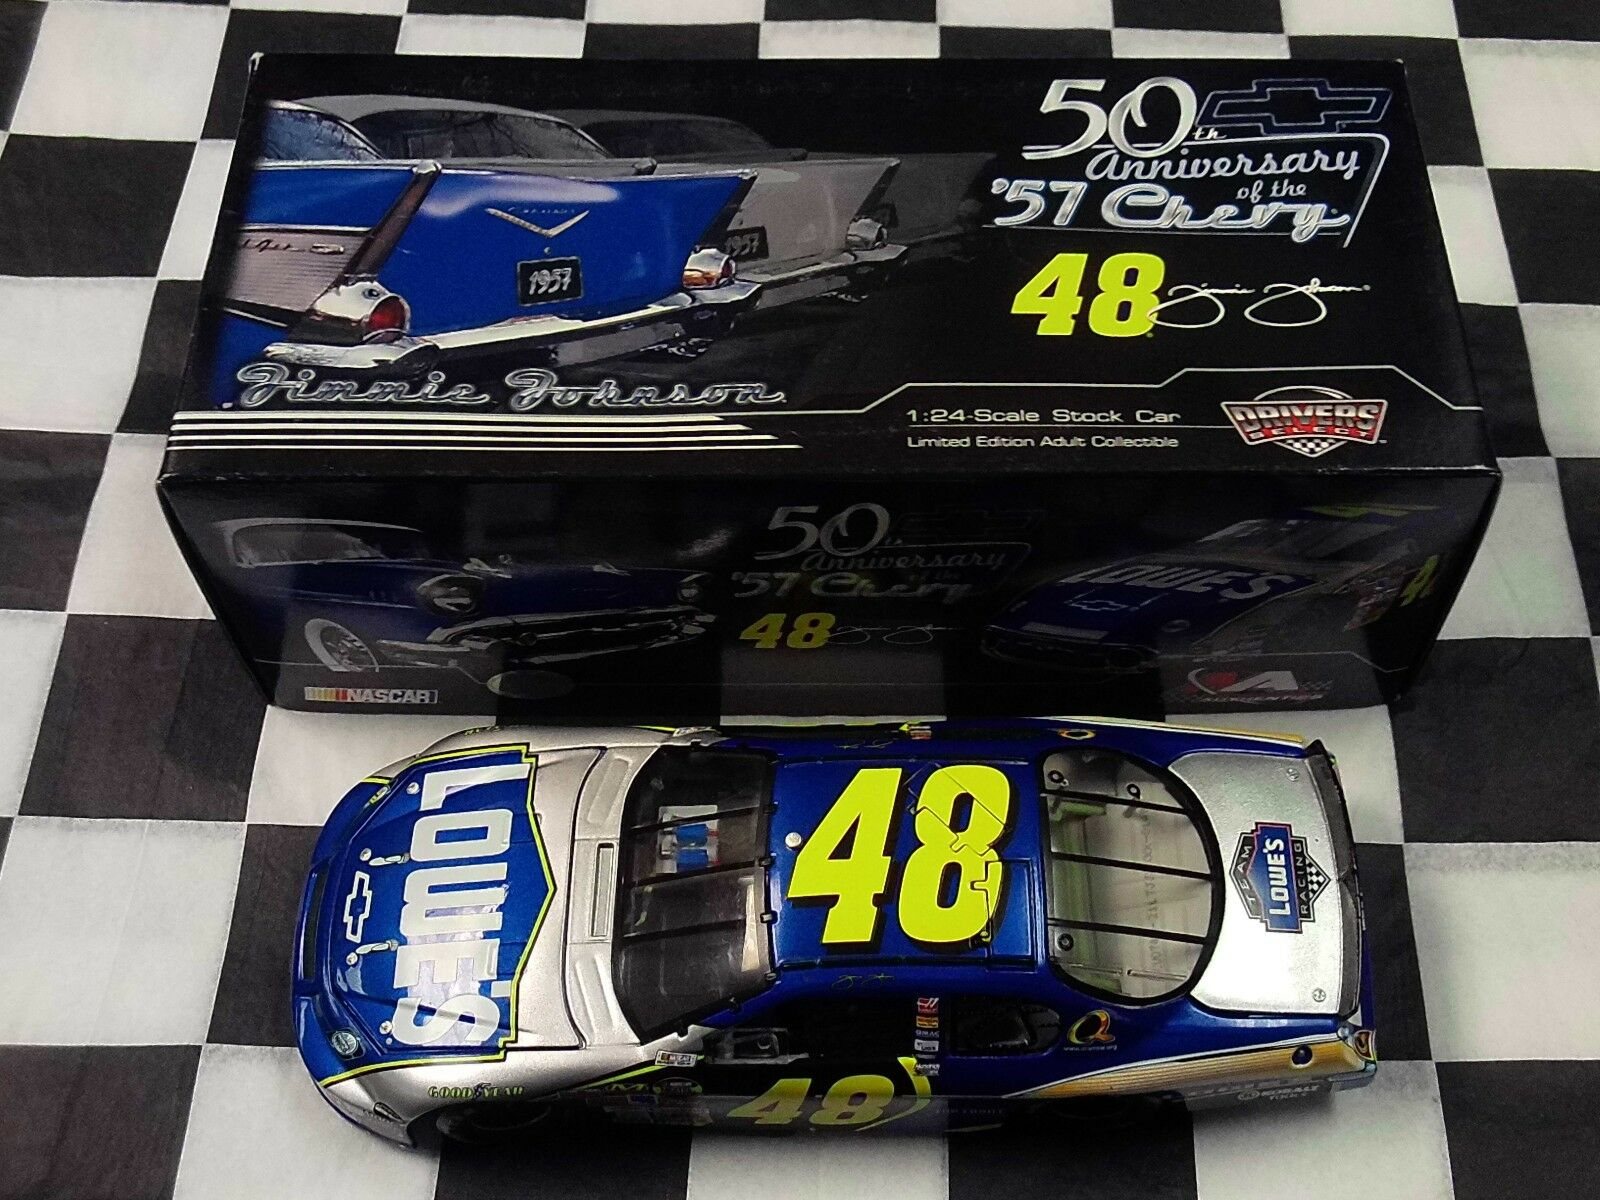 Jimmie Johnson  48 Lowe's Chevrolet 57 2007 MONTE CARLO SS 1 24 Action NEW NASCAR